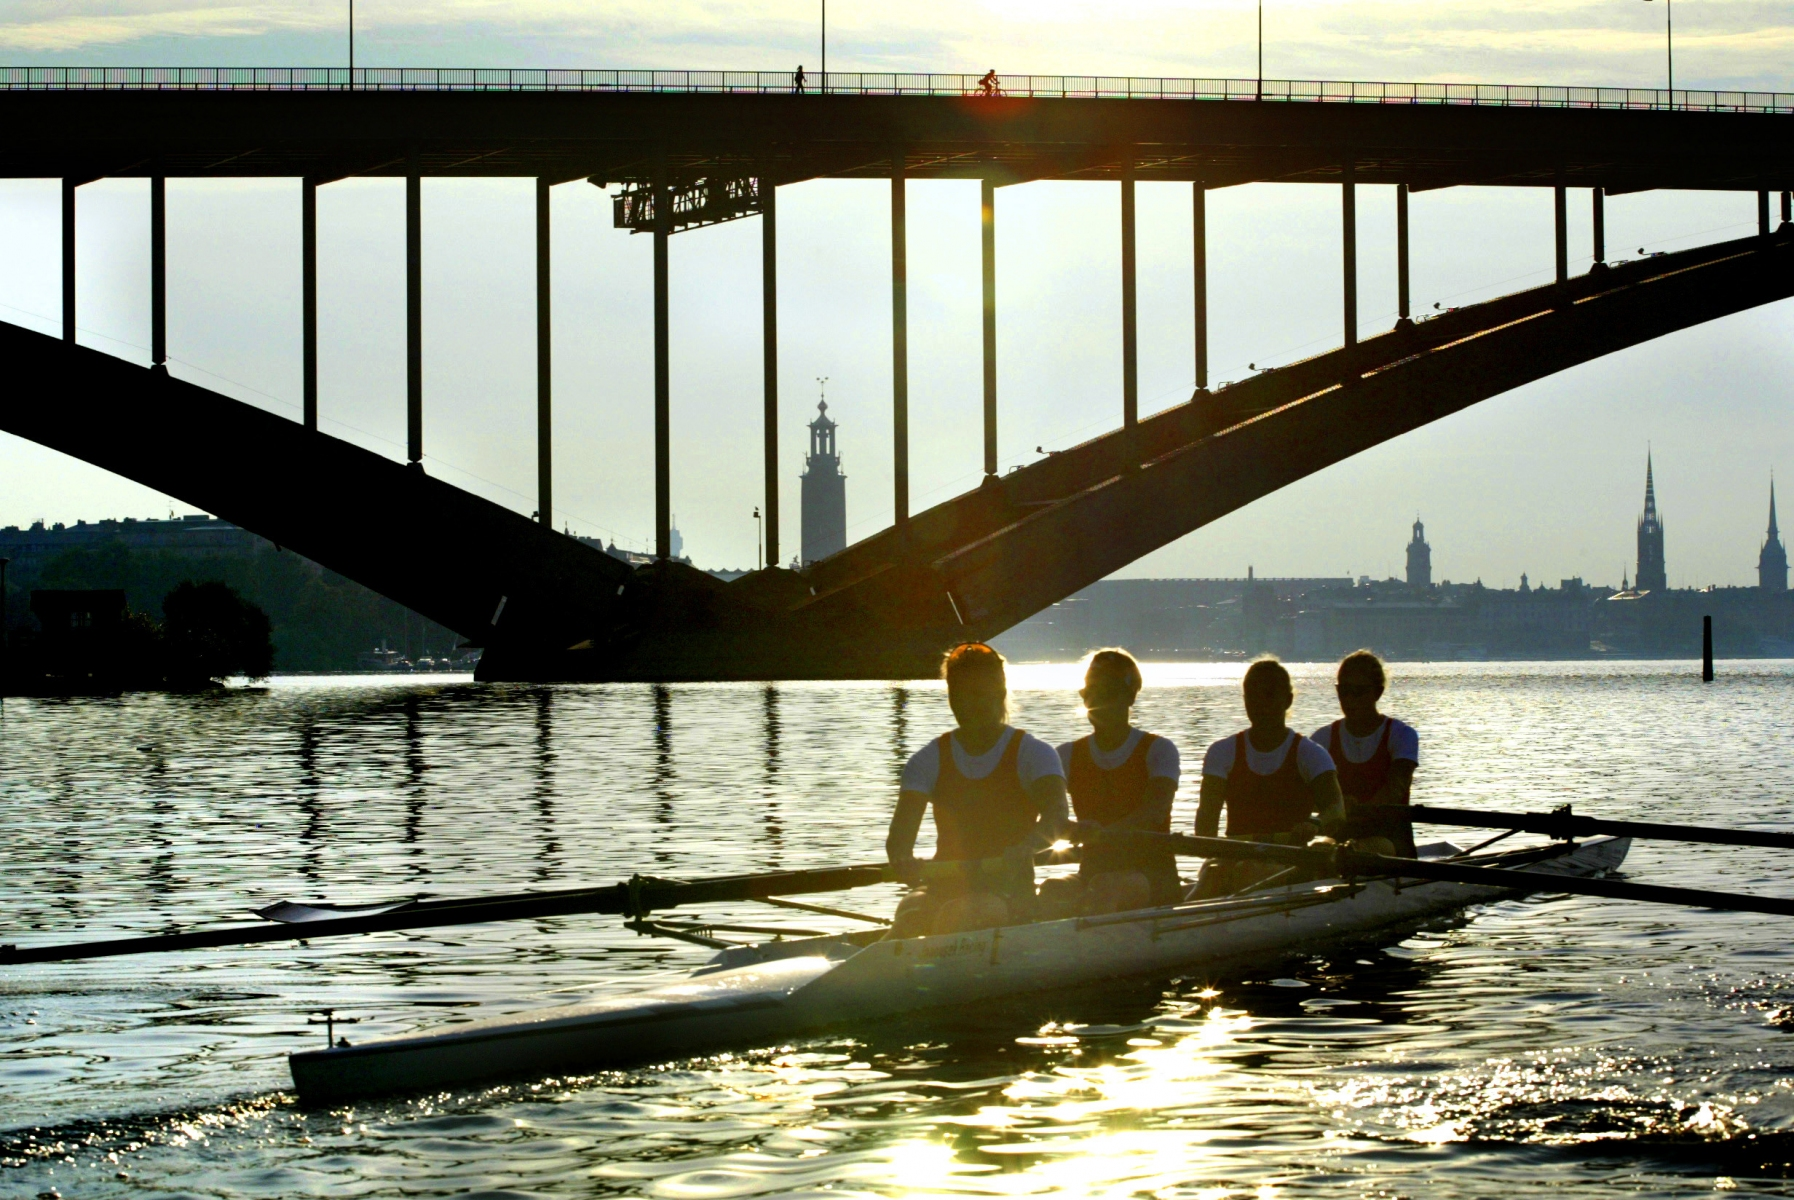 Rowing early in the morning in Stockholm